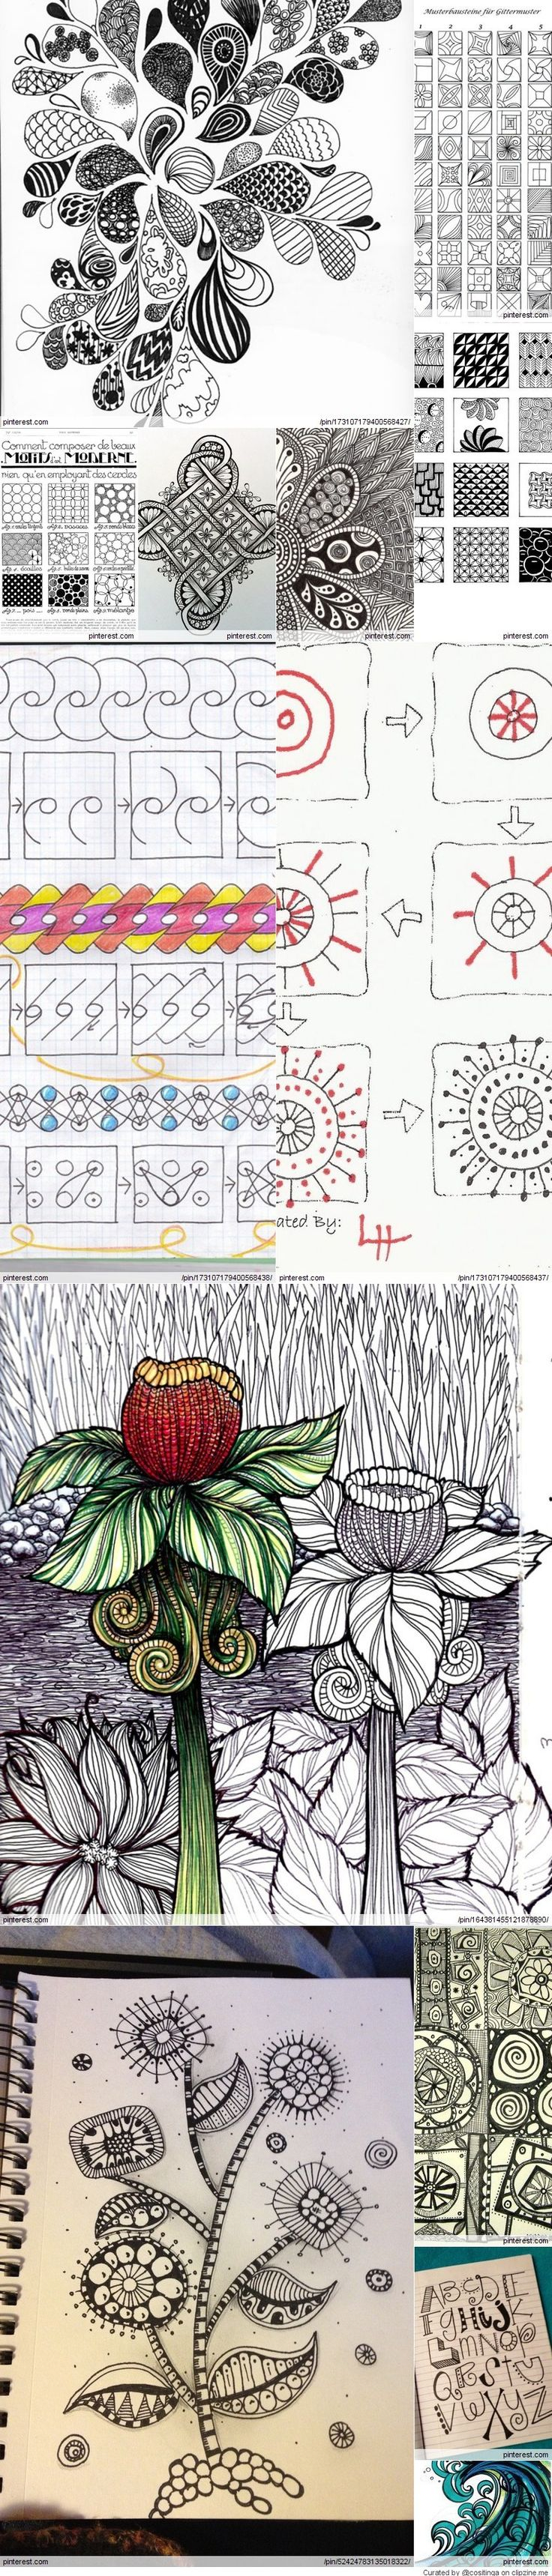 zentangle and doodle                                                                                                                                                      Más